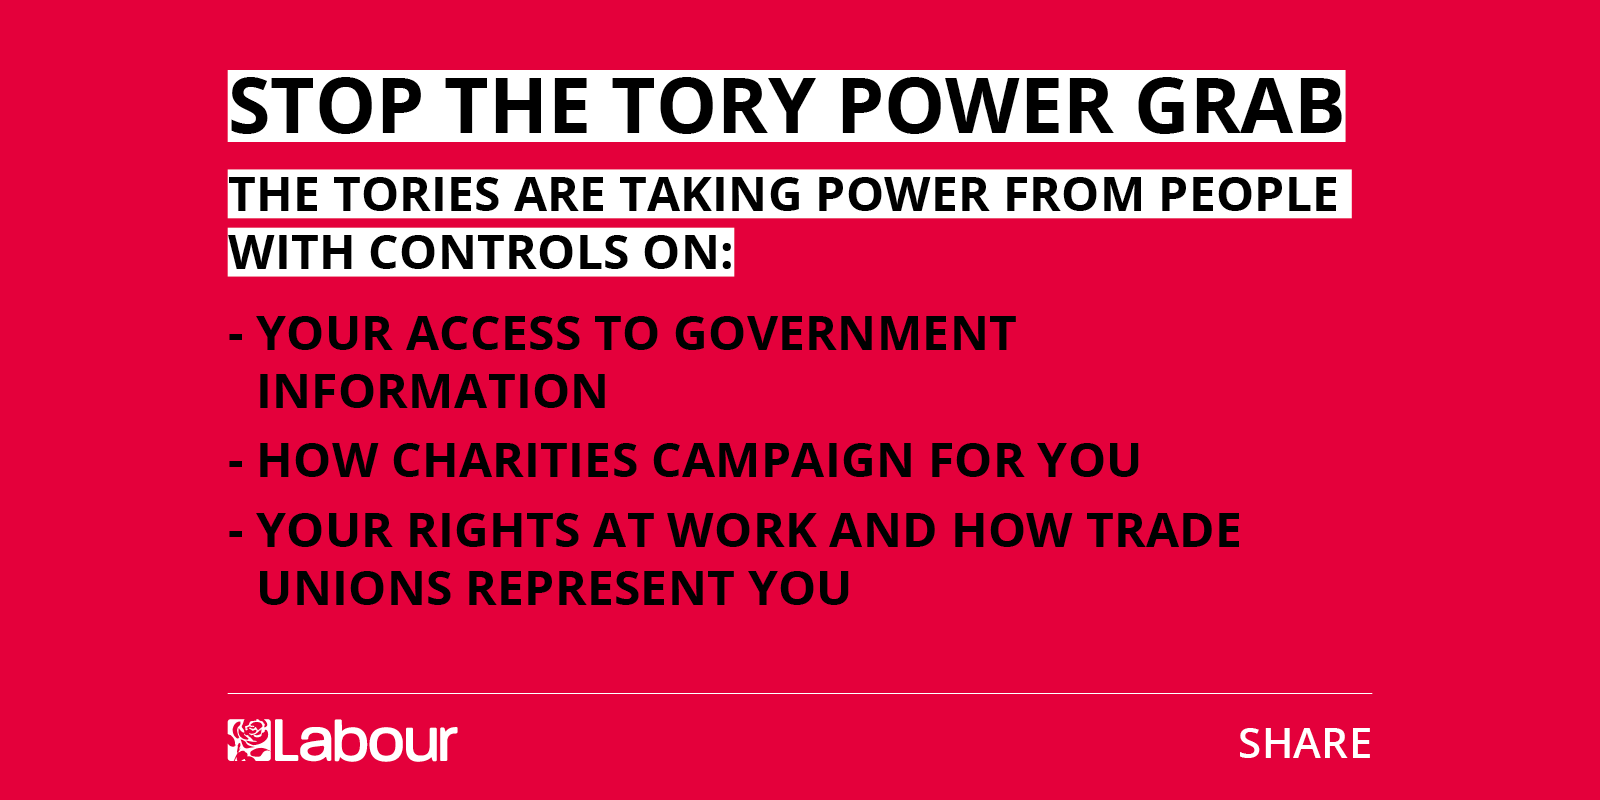 7556_15_Tom_Watson_share_graphic_STOPGRAB2.png